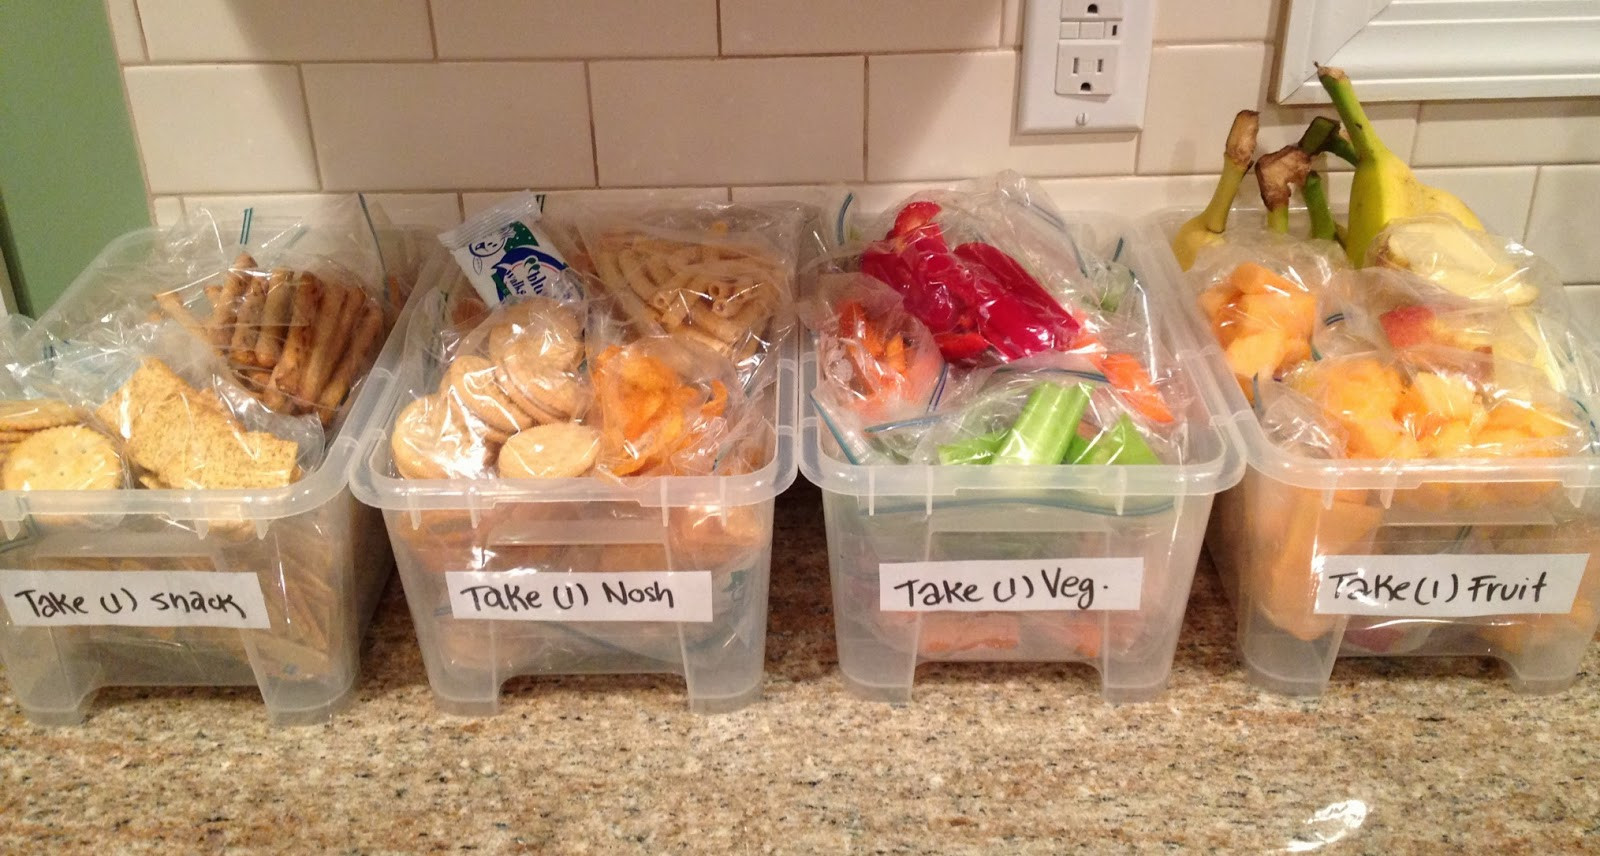 Healthy Bagged Snacks  Not 2 Shabbey Healthy Kosher Snack & Lunch Ideas